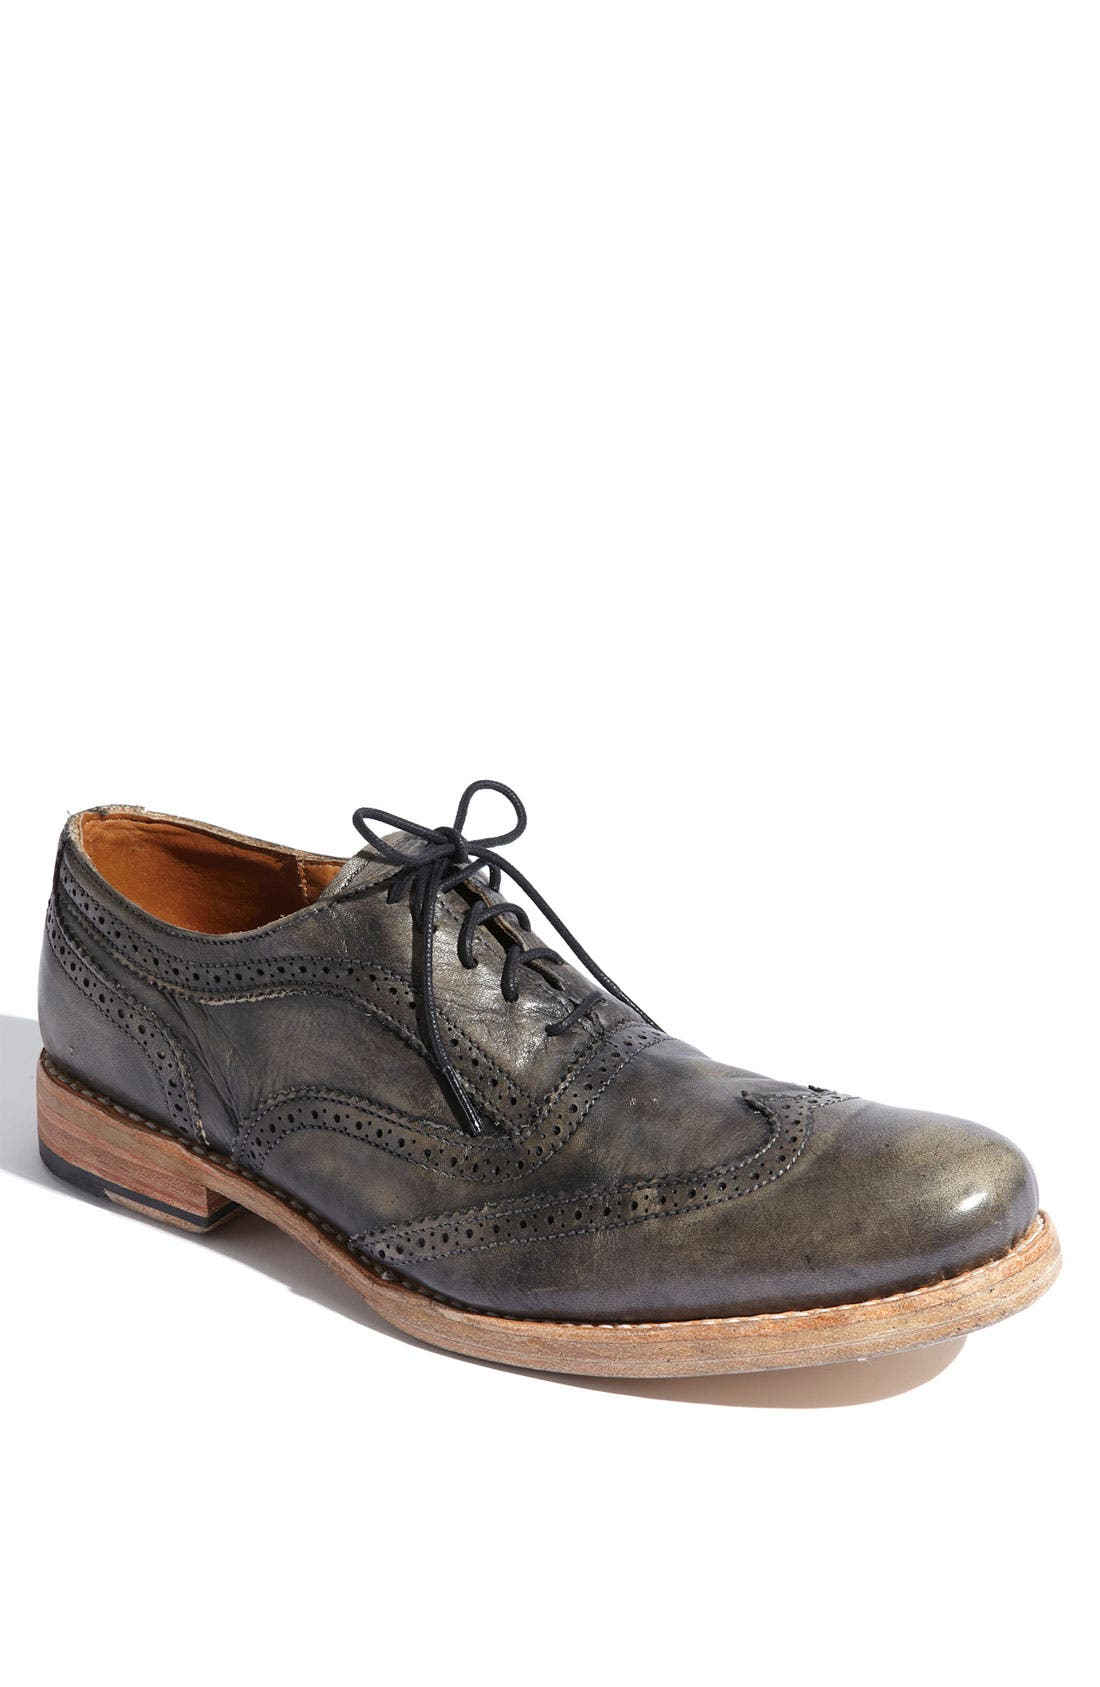 'Corsico' Wingtip Oxford,                             Main thumbnail 1, color,                             001